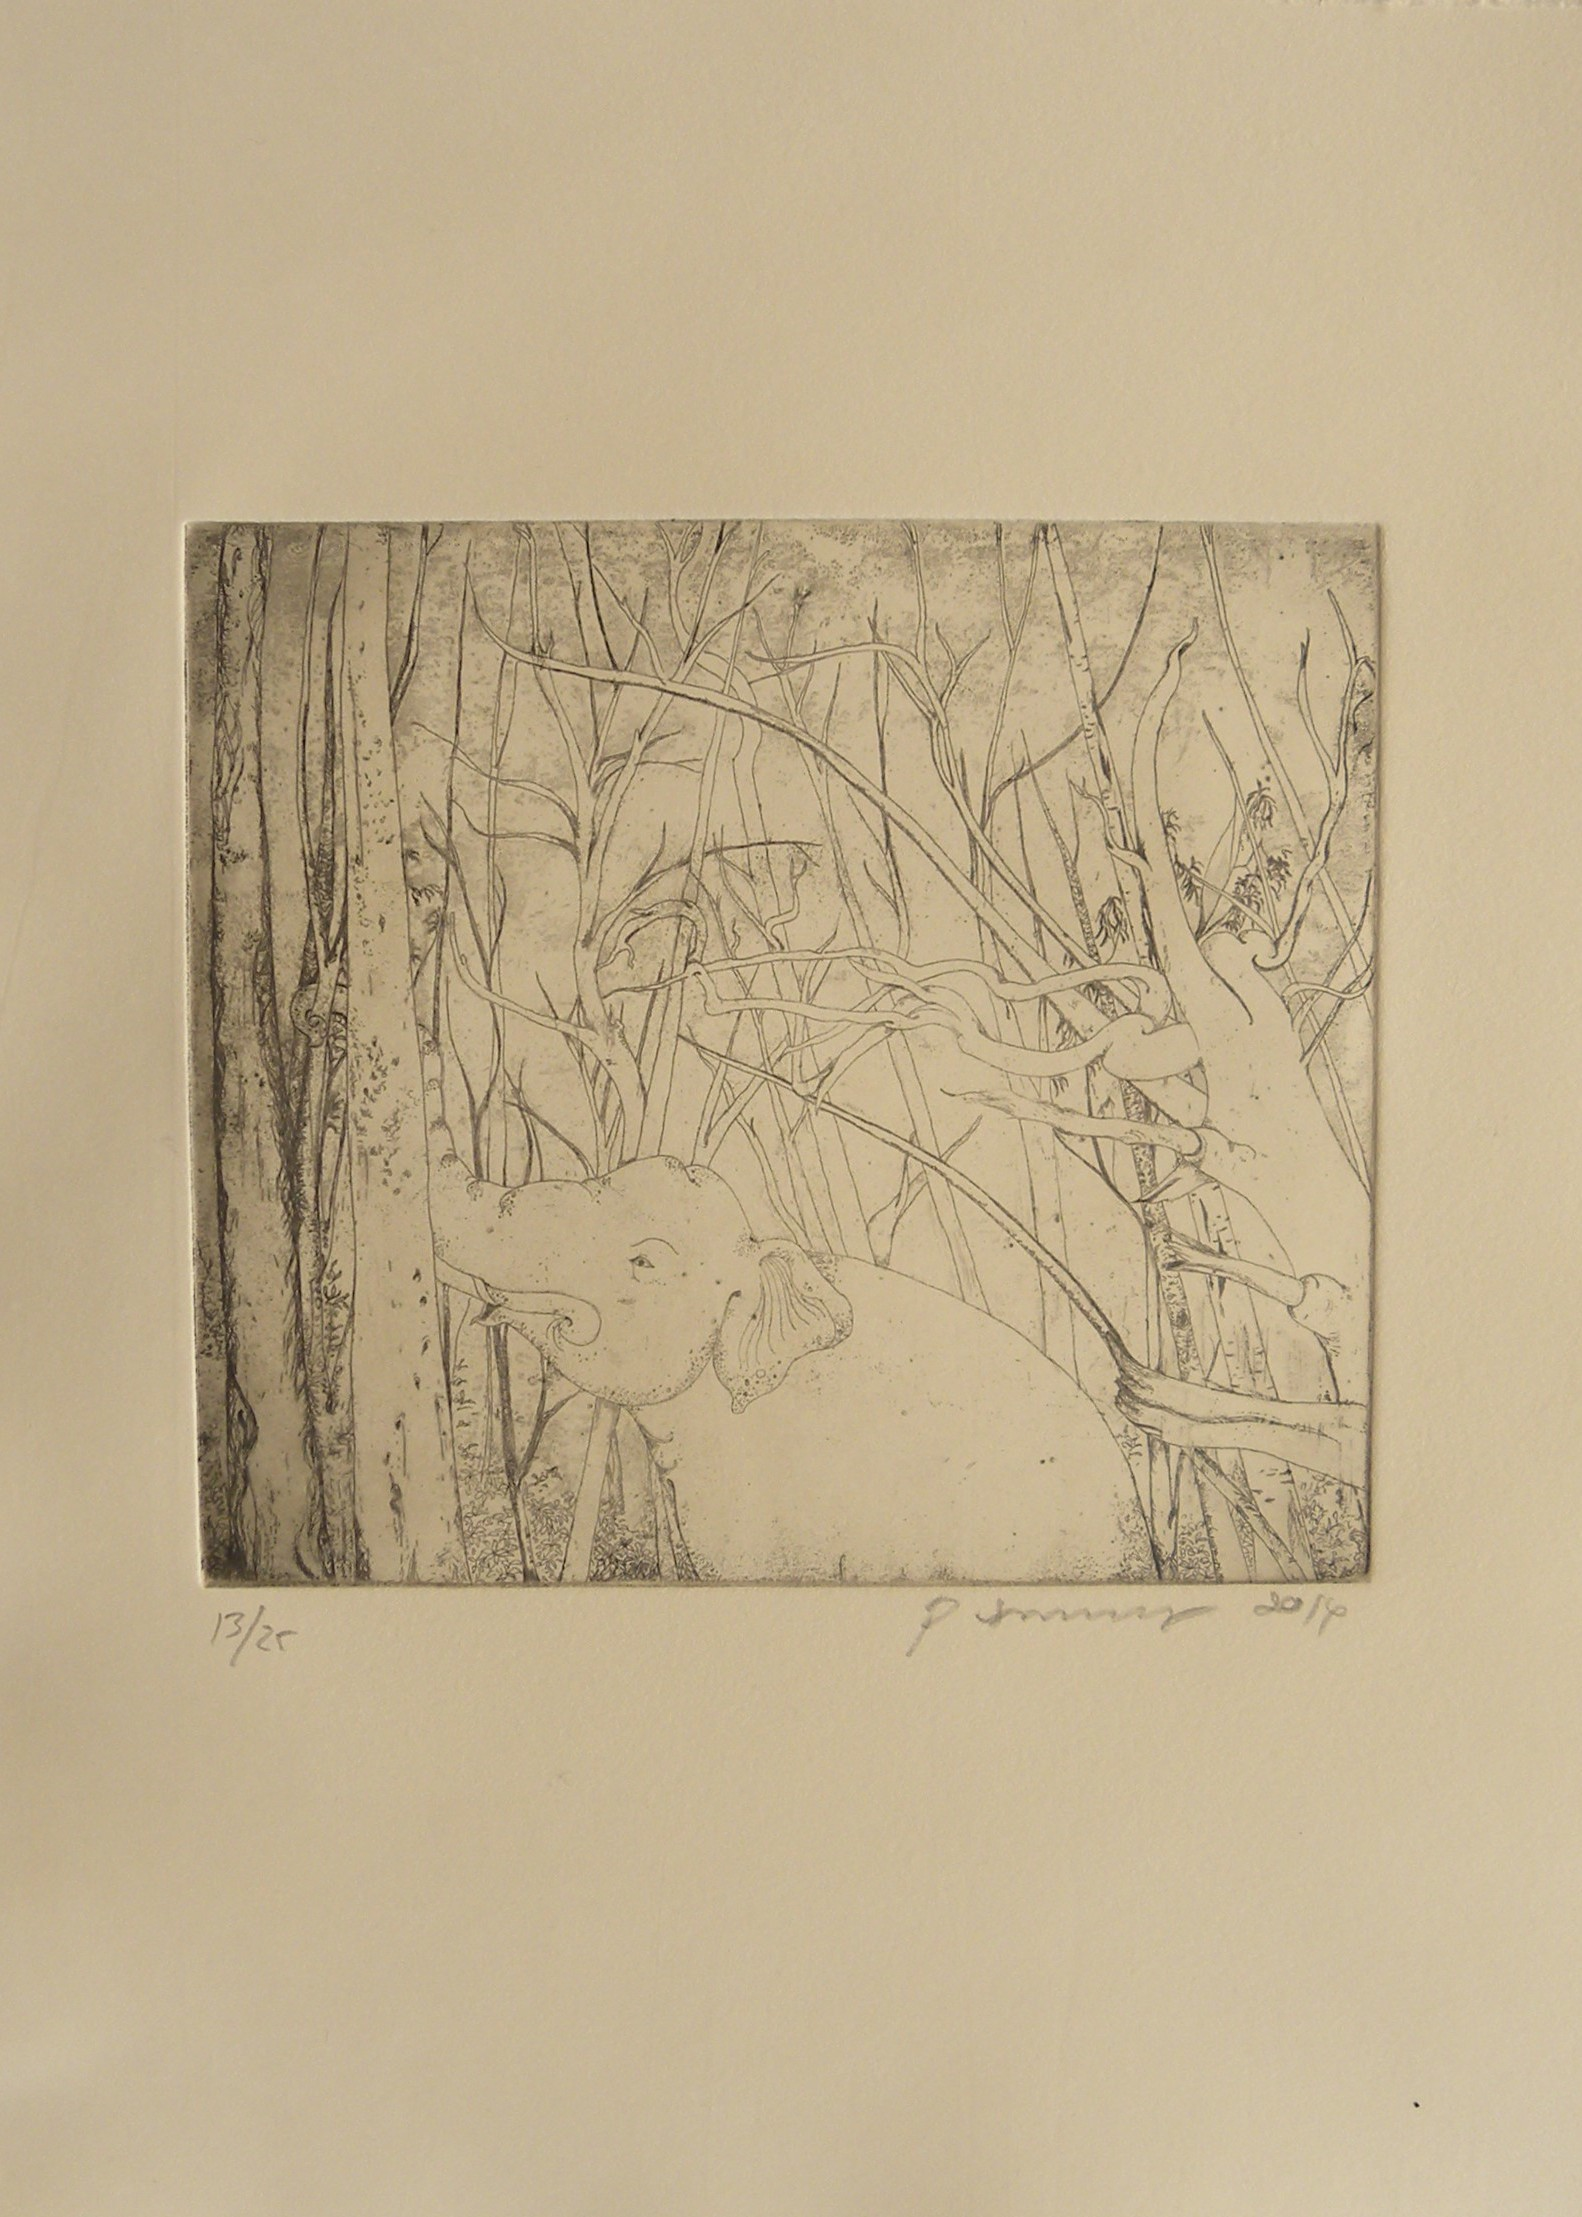 Art Atrium - Phaptawan Suwannakudt-Elephant and the Bush #1, etching Sepia on Fabiano edition 13:25 (unframe) 2014